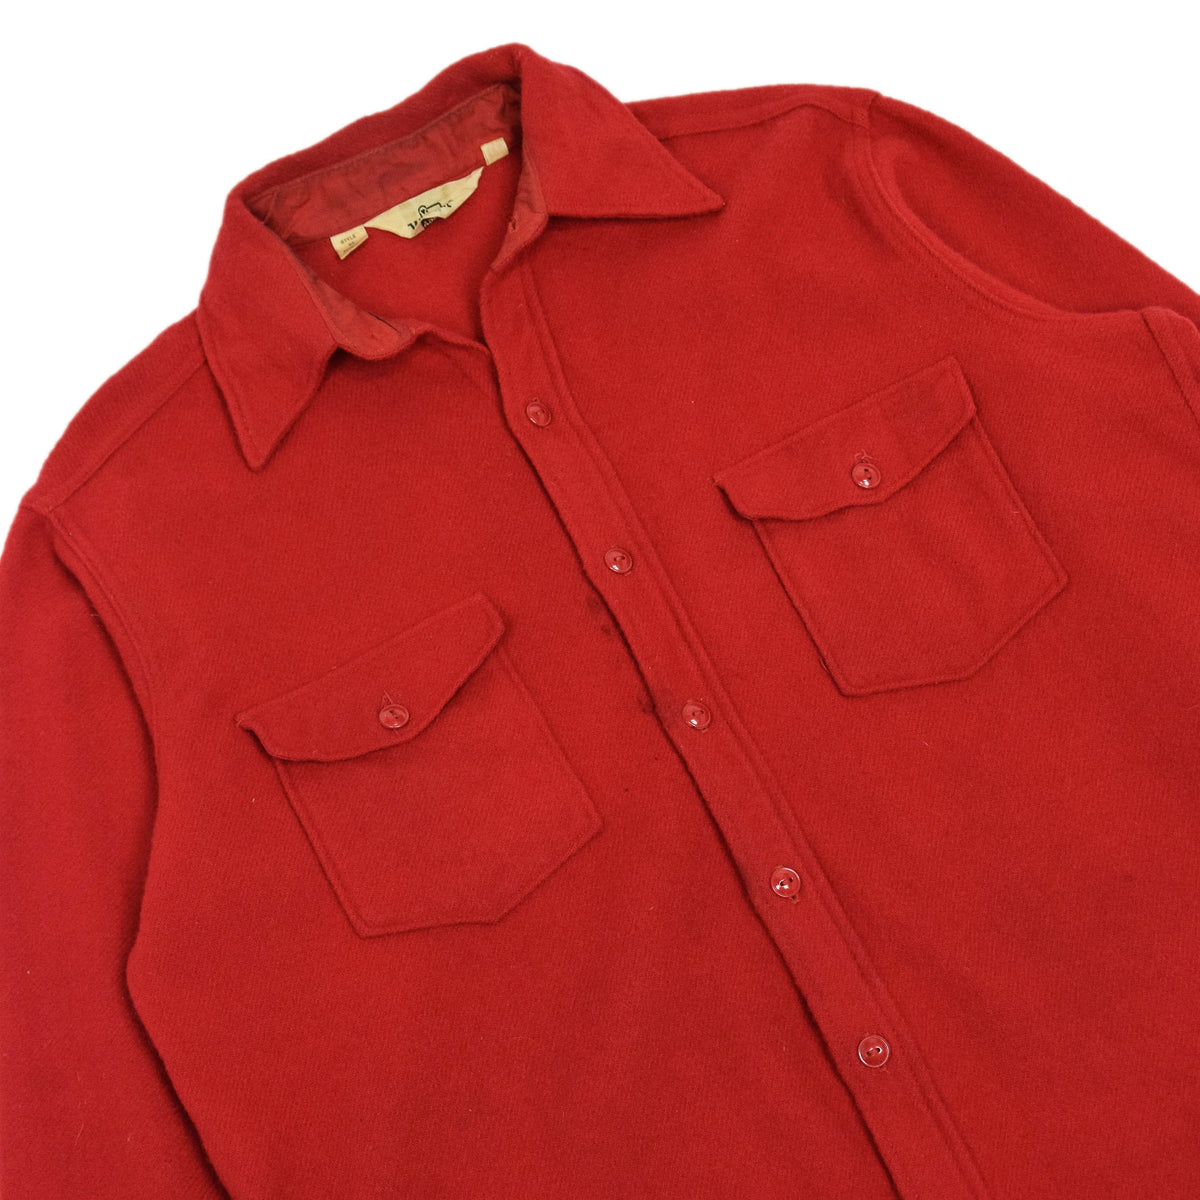 Vintage 70s Woolrich Red Long Sleeve Wool Shirt Made in USA L chest